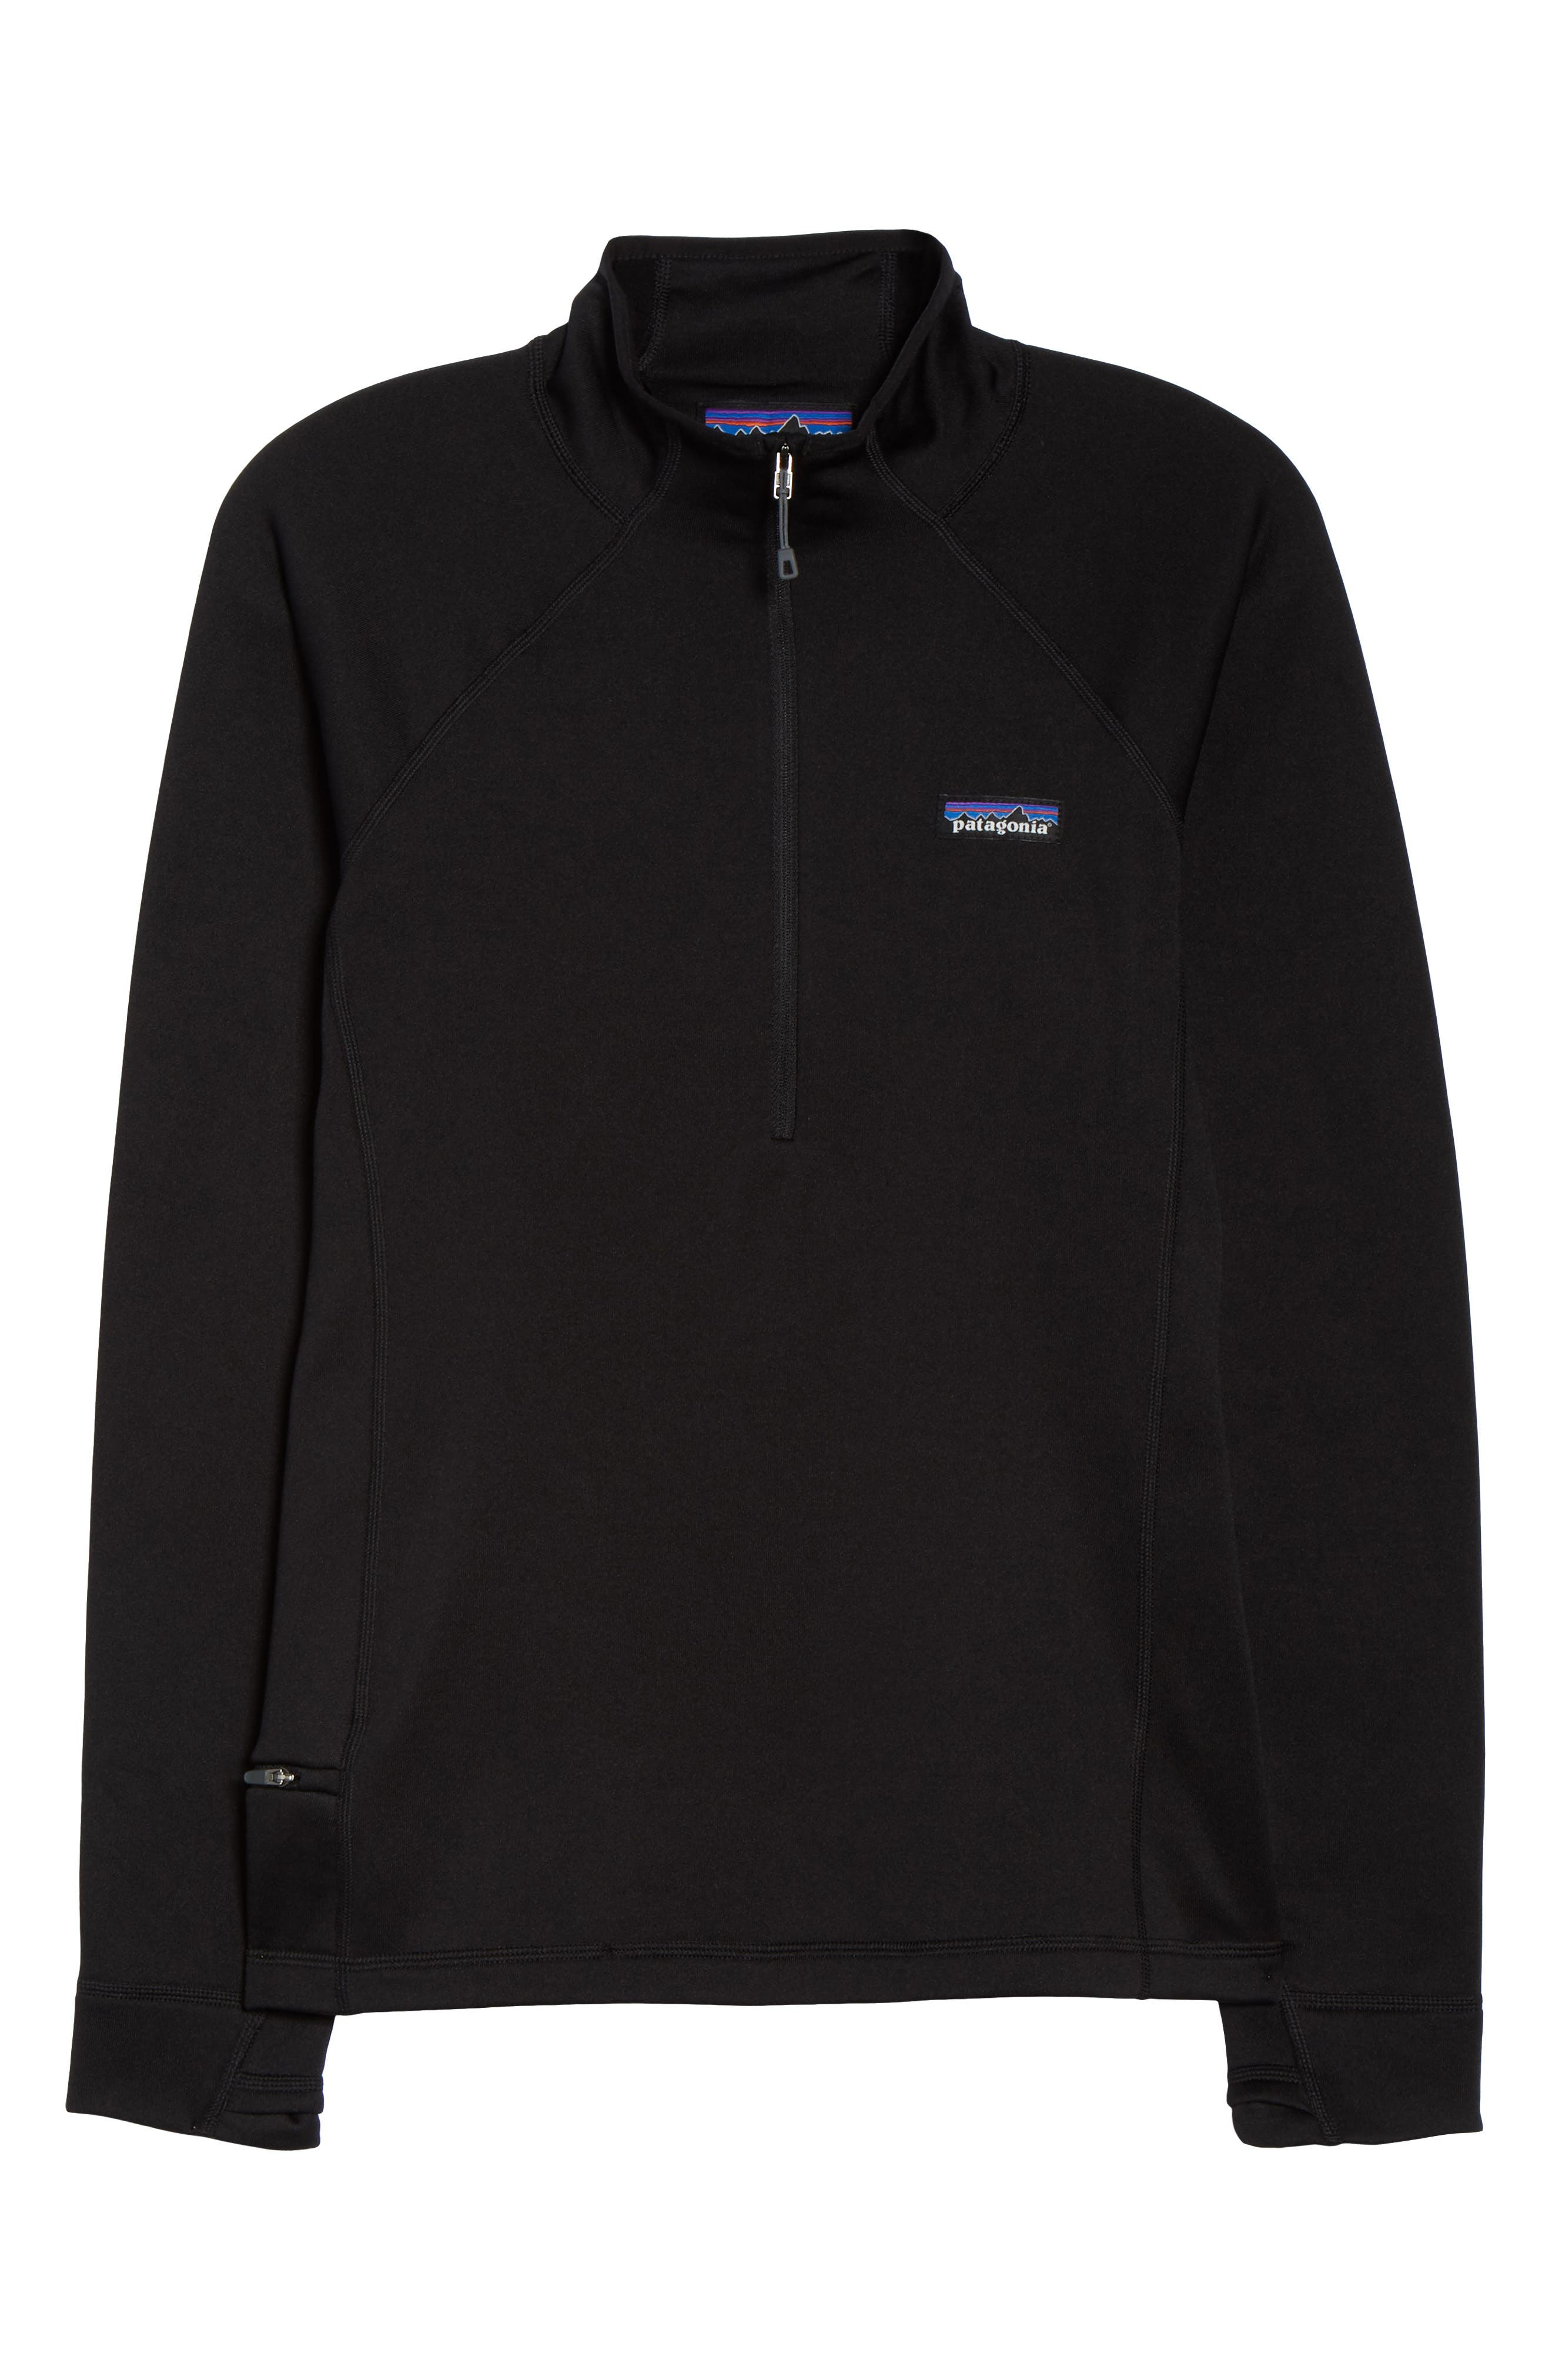 Crosstrek Quarter Zip Jacket,                             Alternate thumbnail 7, color,                             001